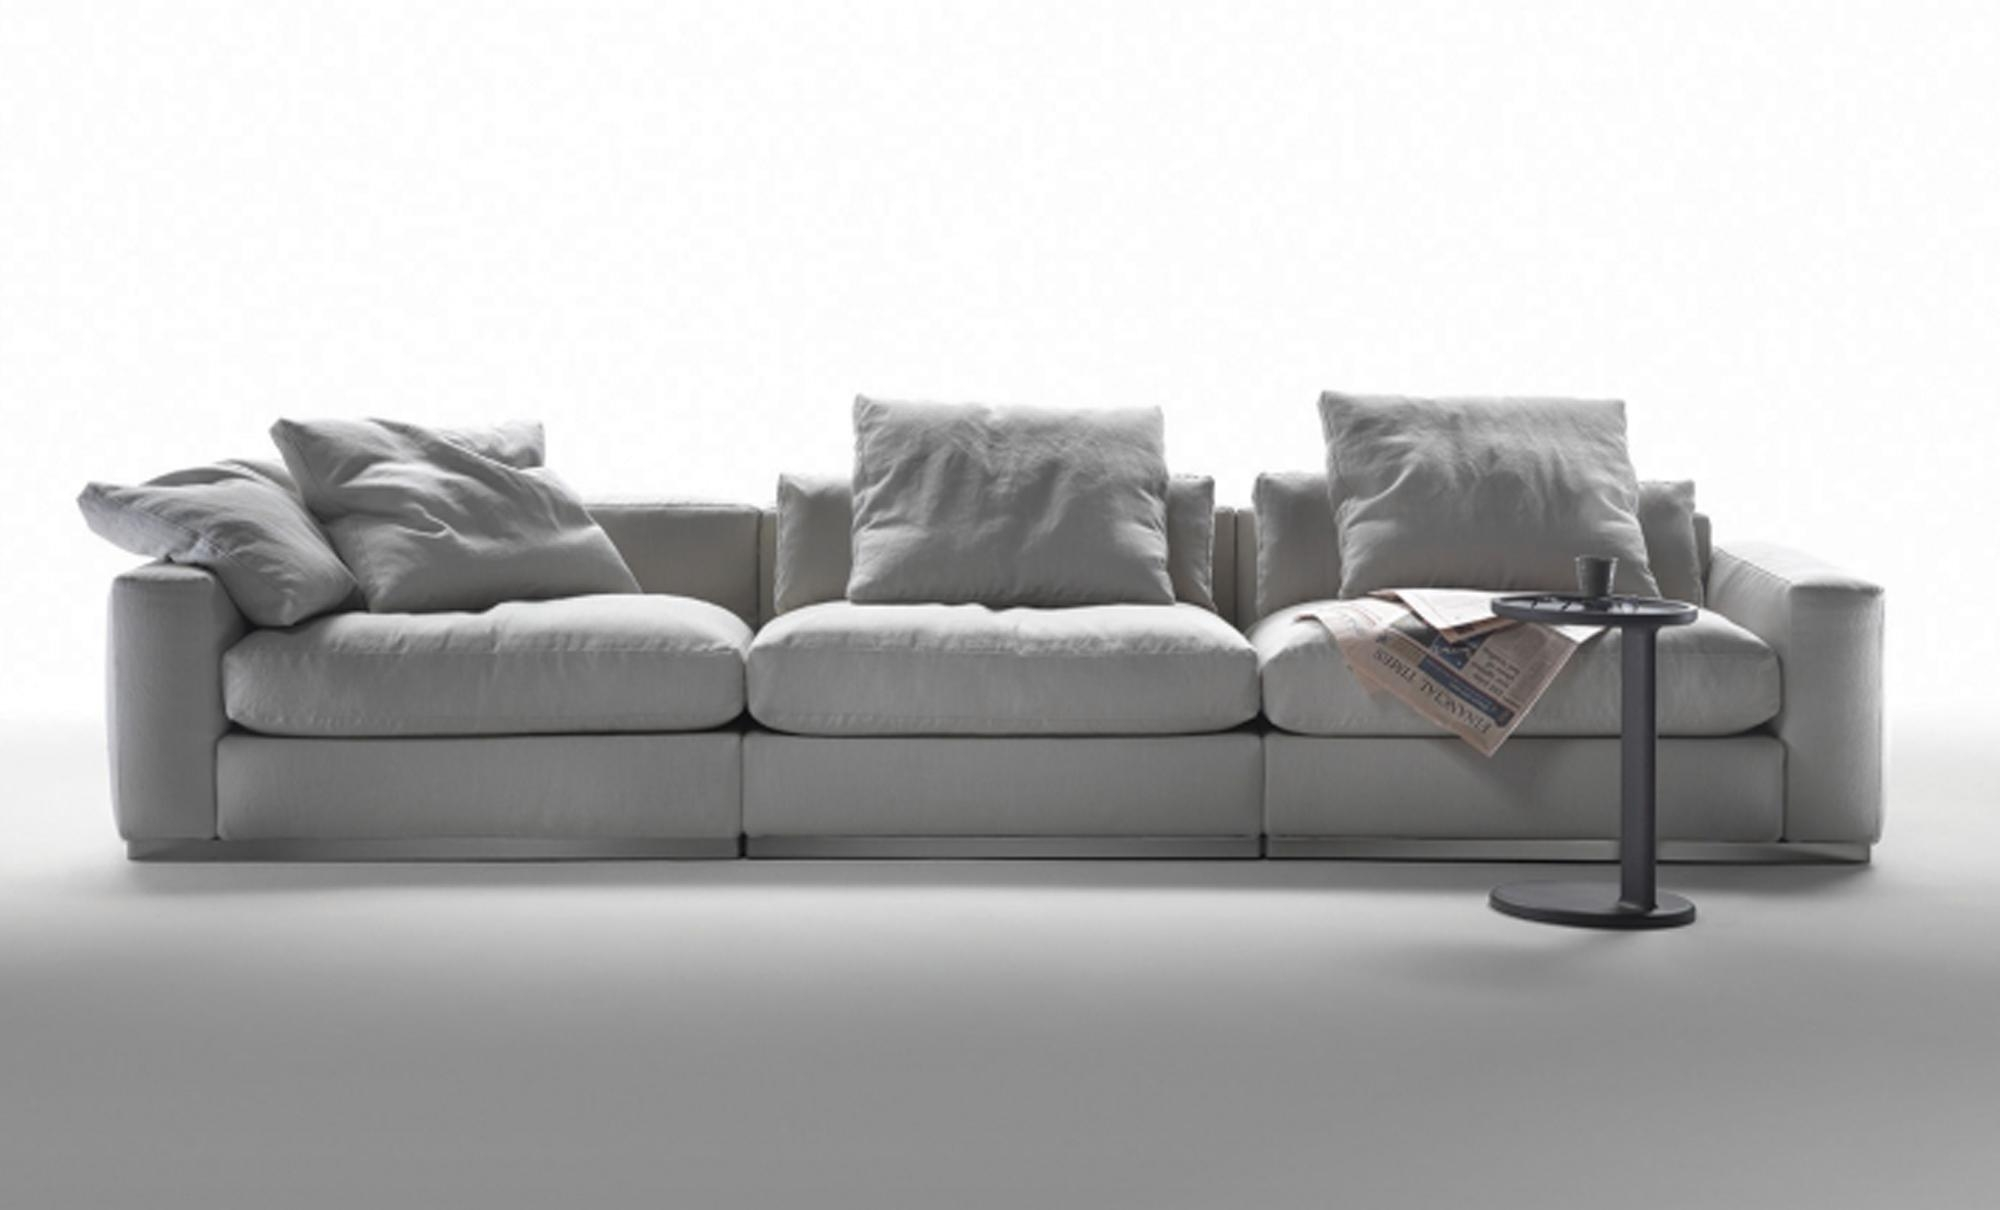 Flexform Furniture – Fanuli Furniture Pertaining To Flexform Sofas (Image 6 of 20)